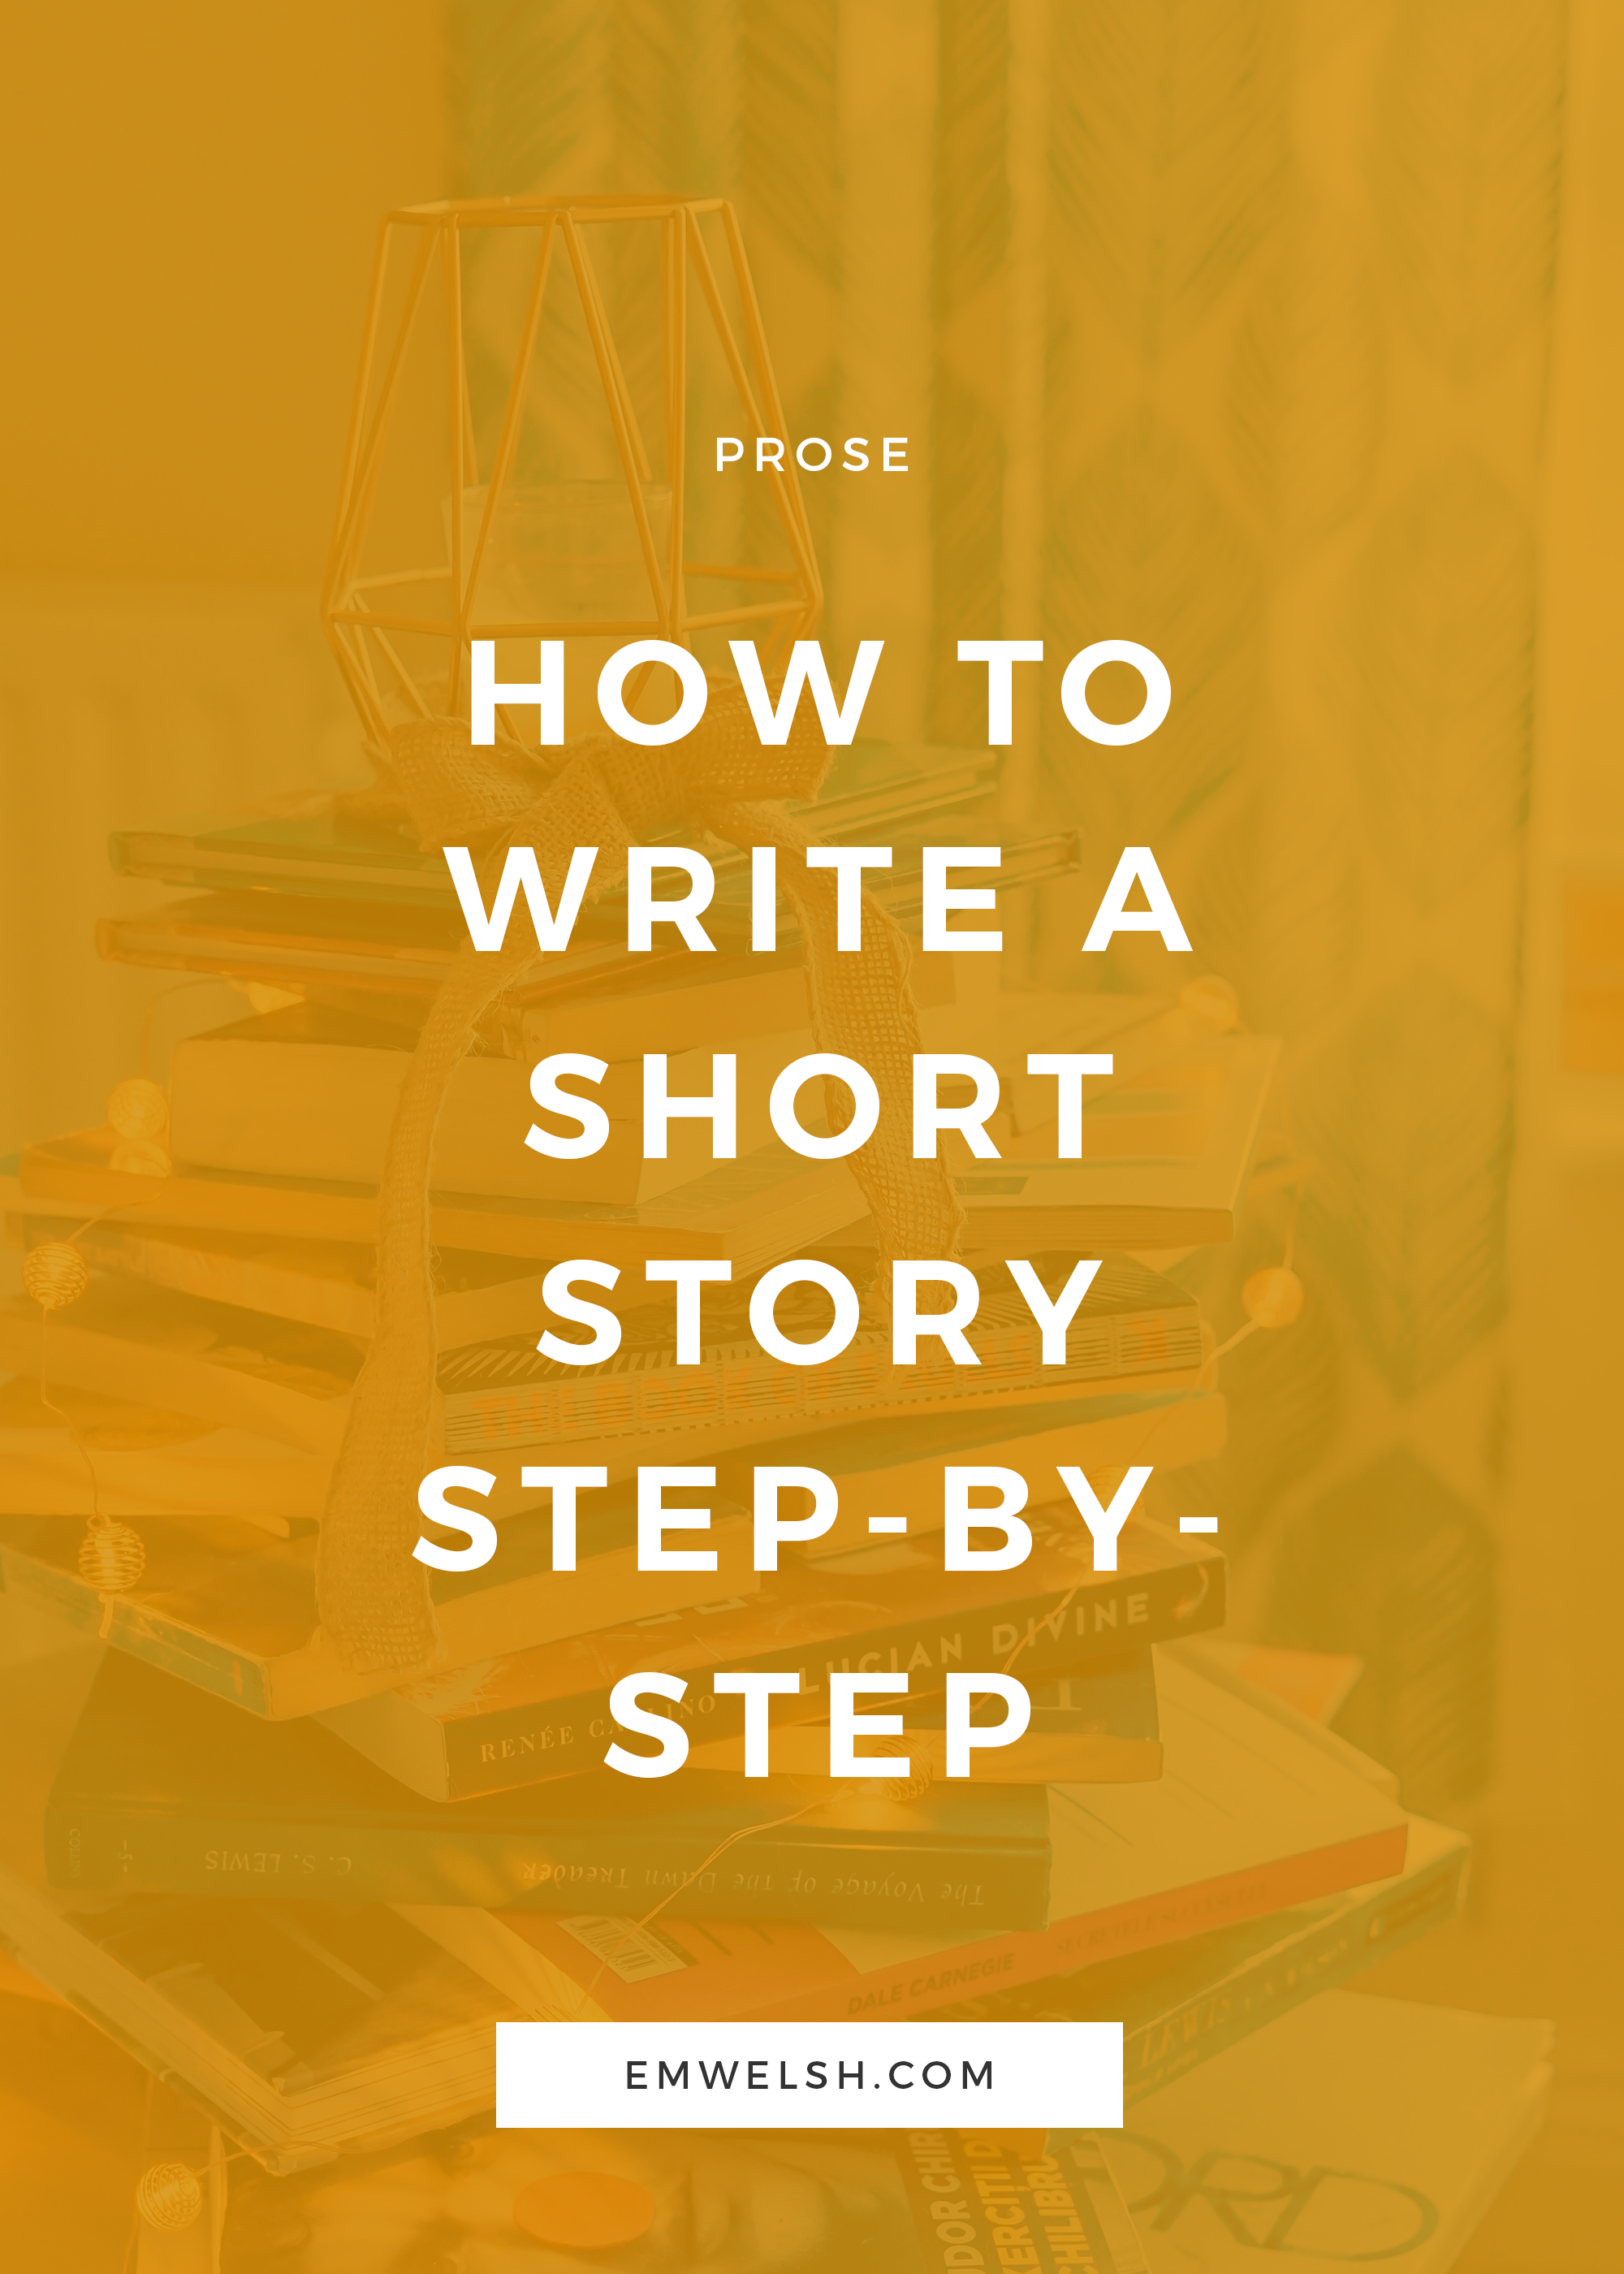 how-to-write-a-short-story-step-by-step.png